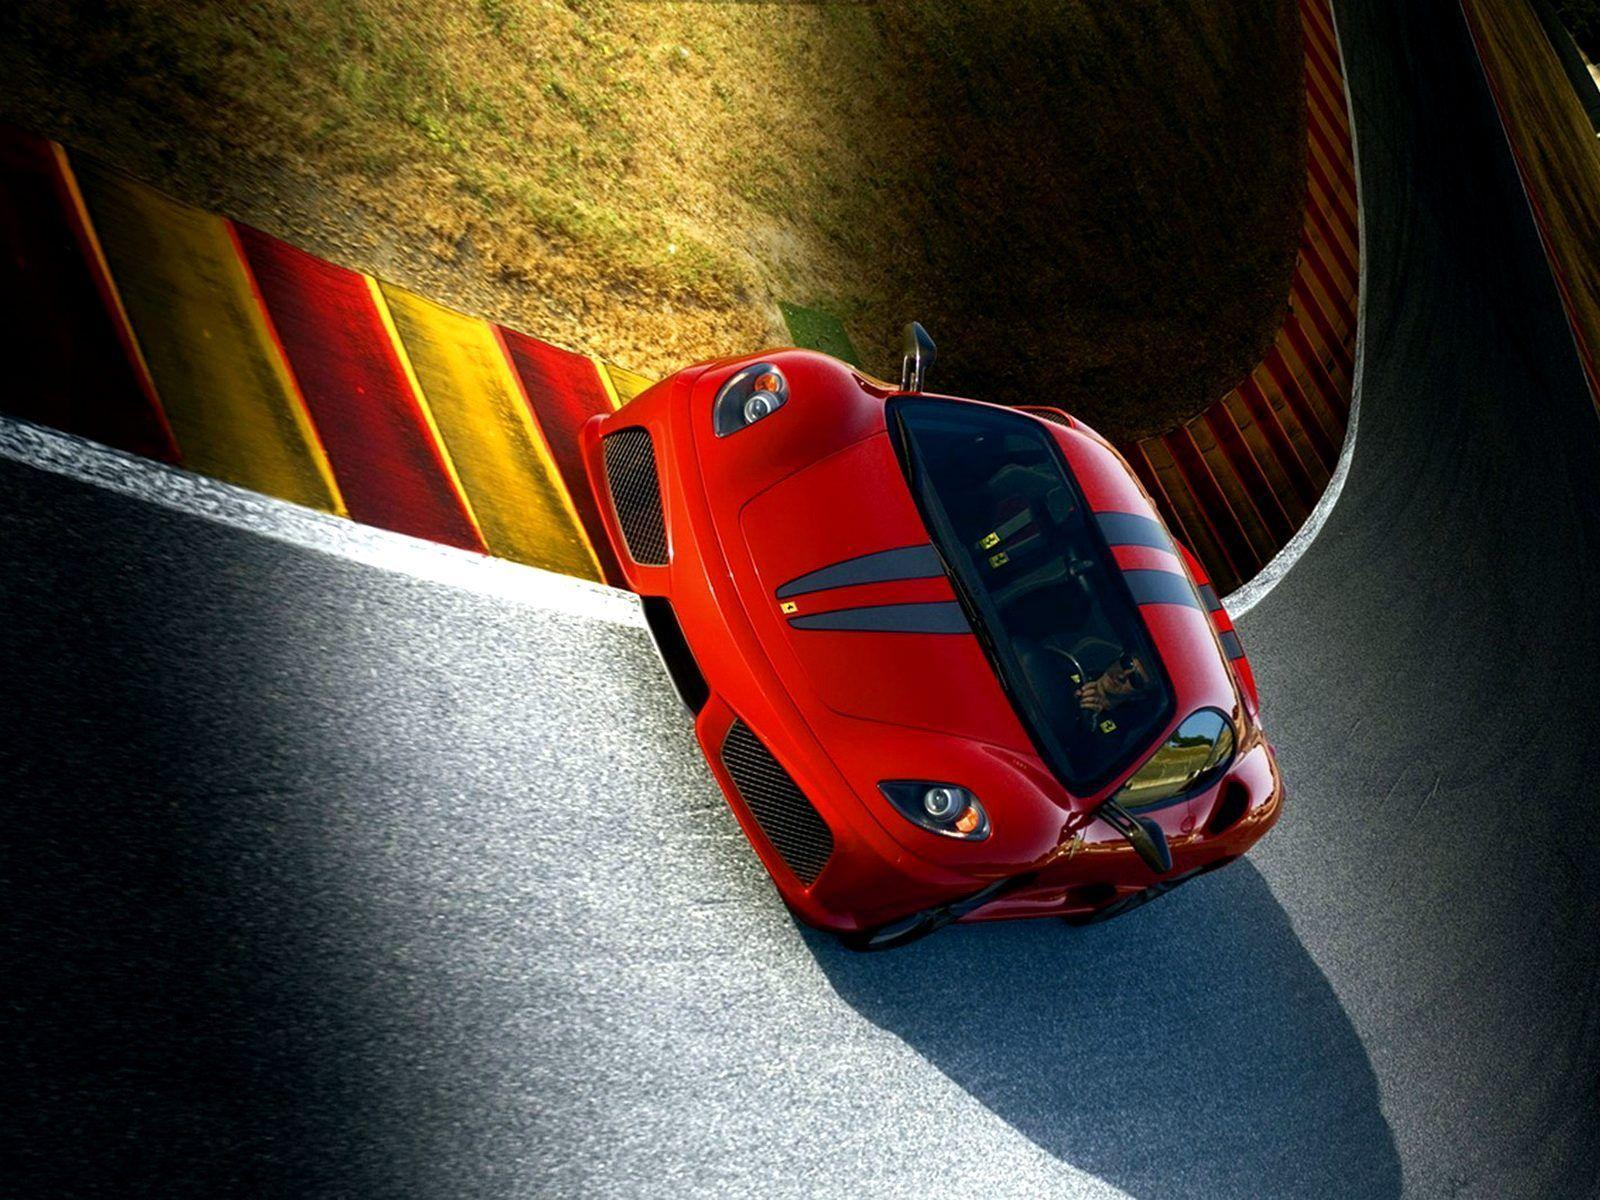 Ferrari F430 Scuderia Wallpapers